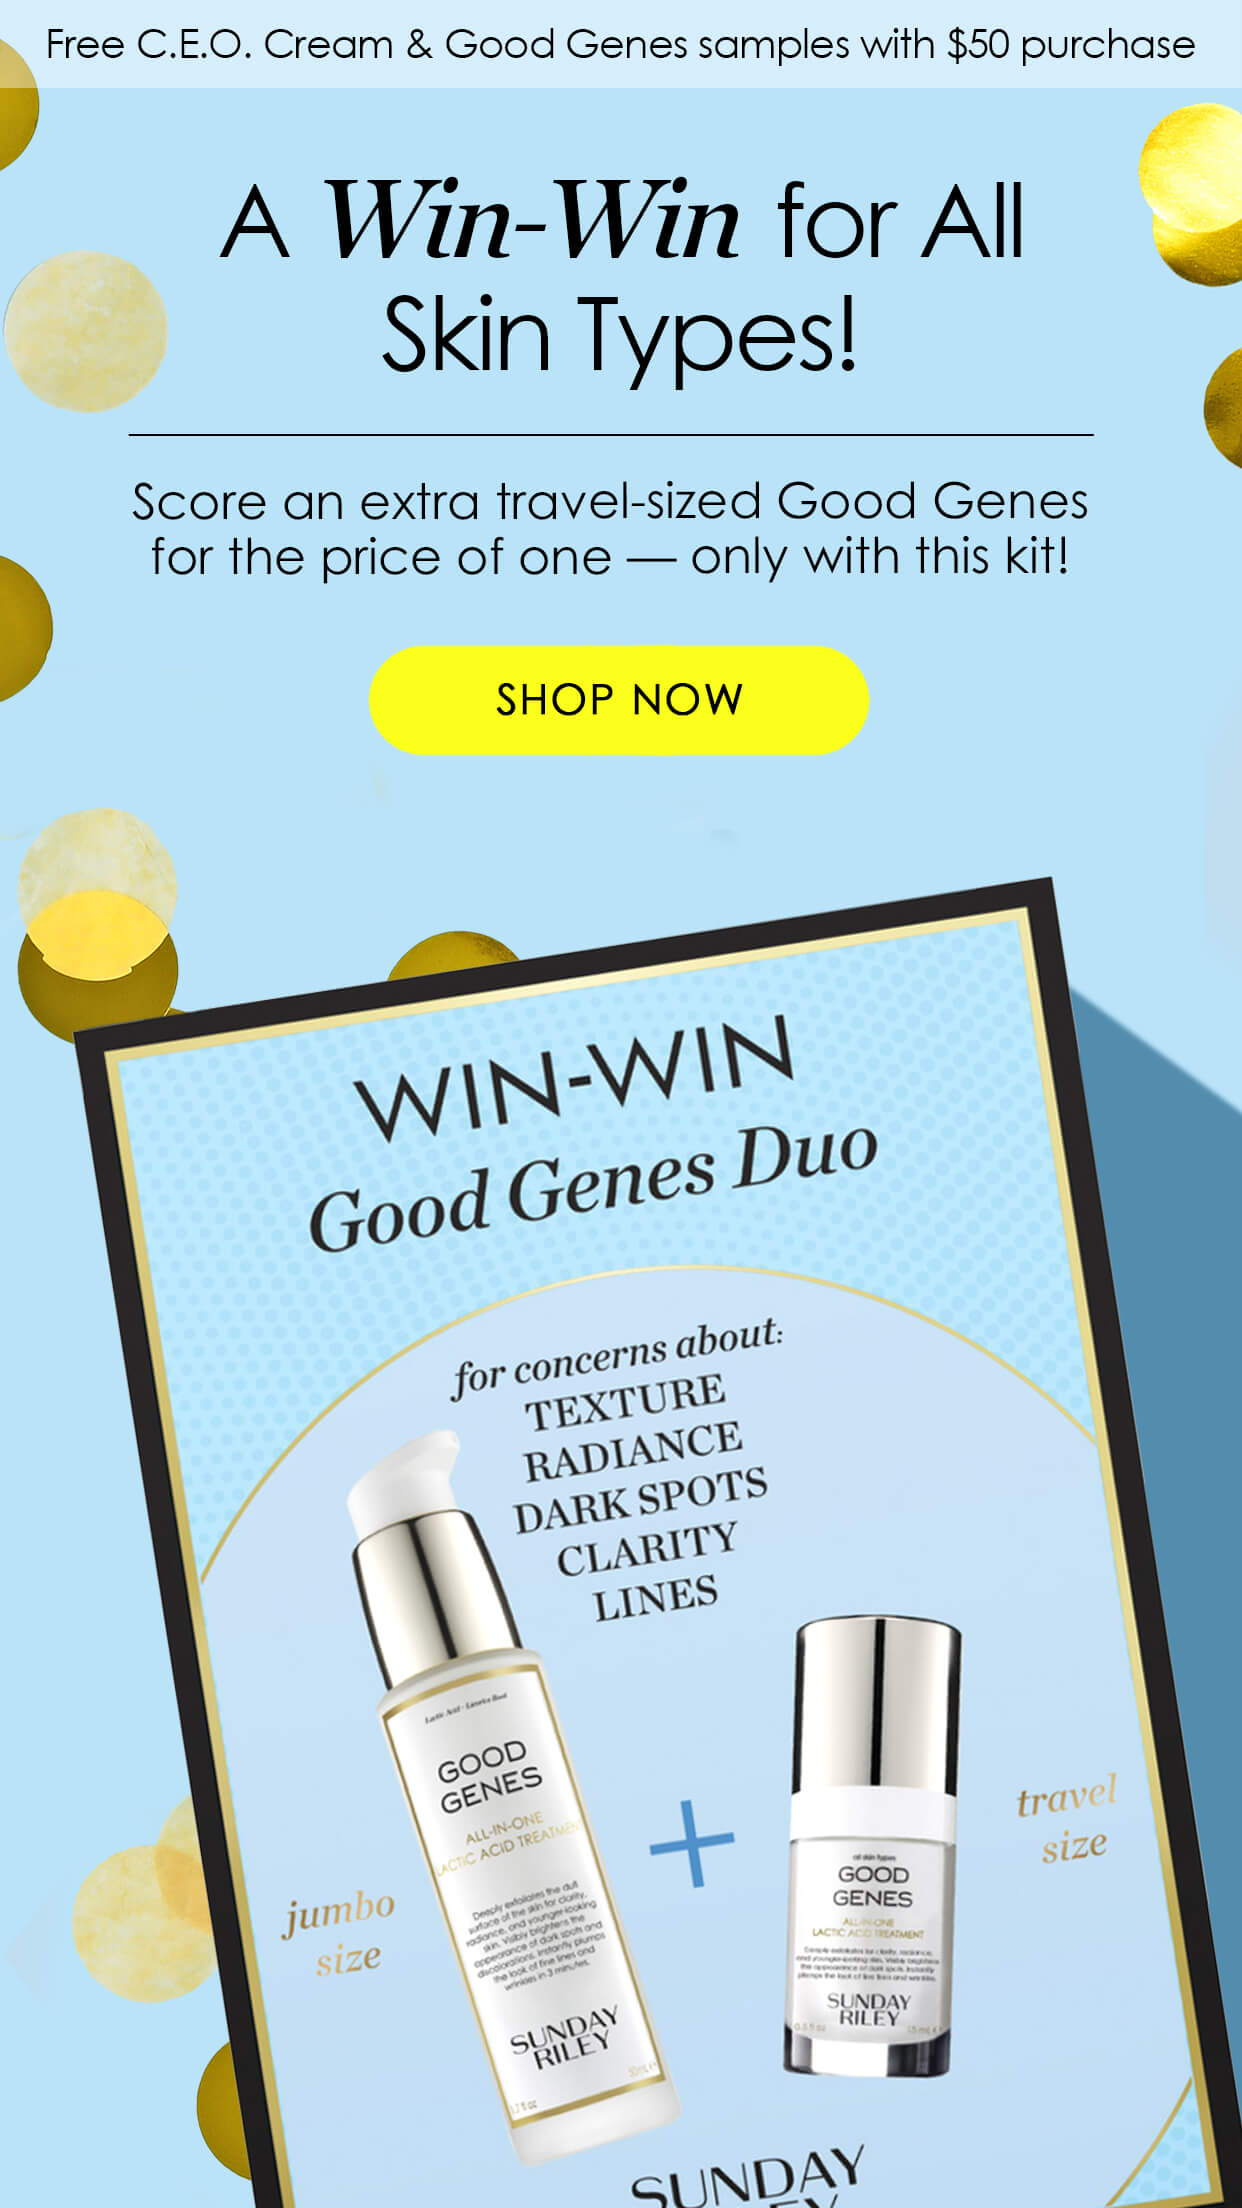 Score an extra travel-sized Good Genes for the price of one — only with this kit!